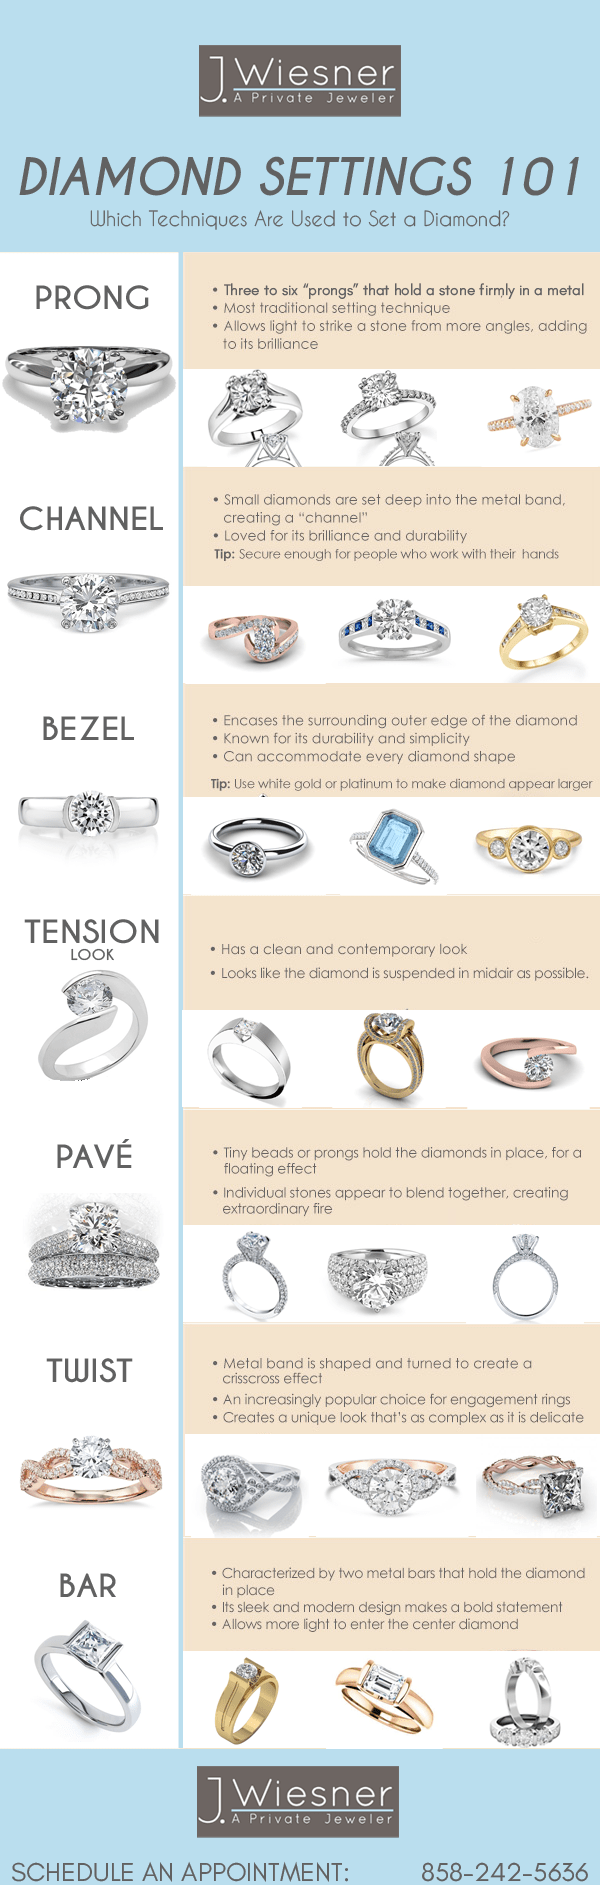 Engagement Ring Settings 101 Infographic